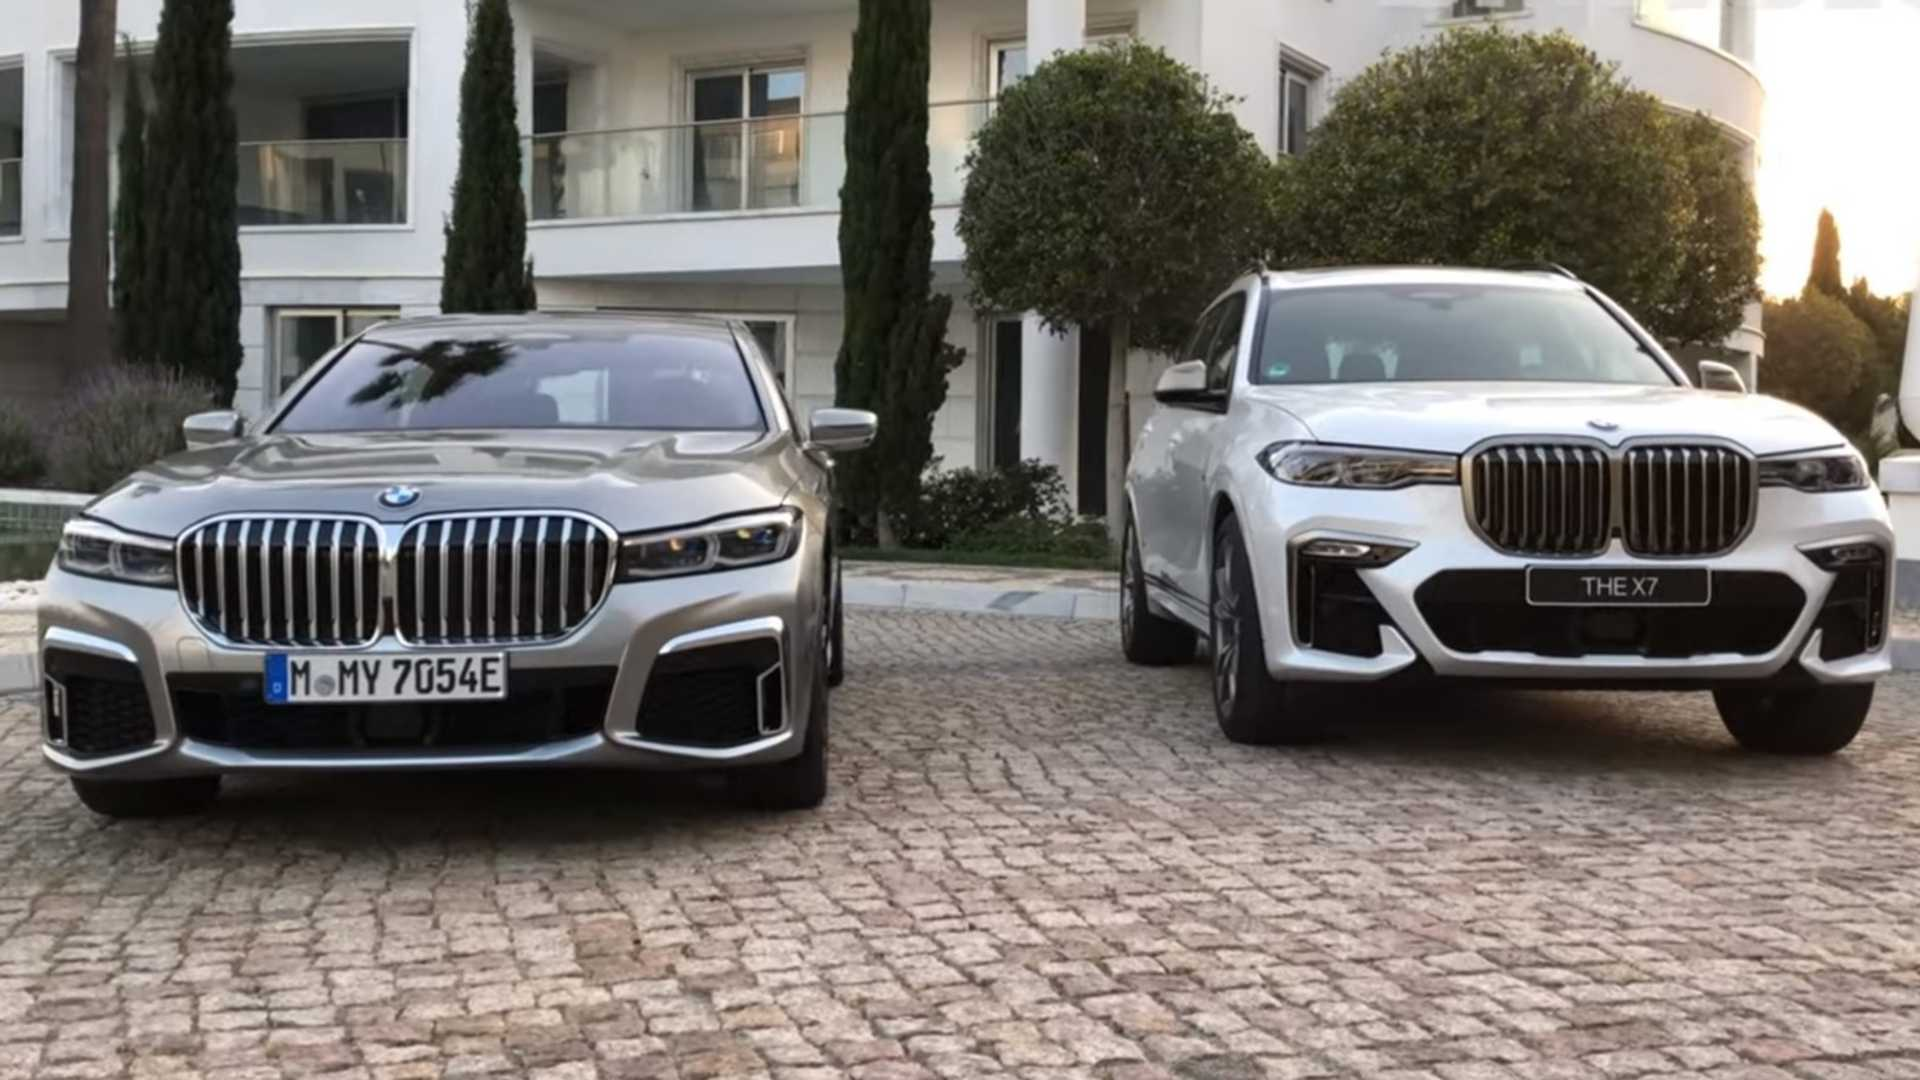 Which Bmw Wears The Giant Grille Better 7 Series Or X7